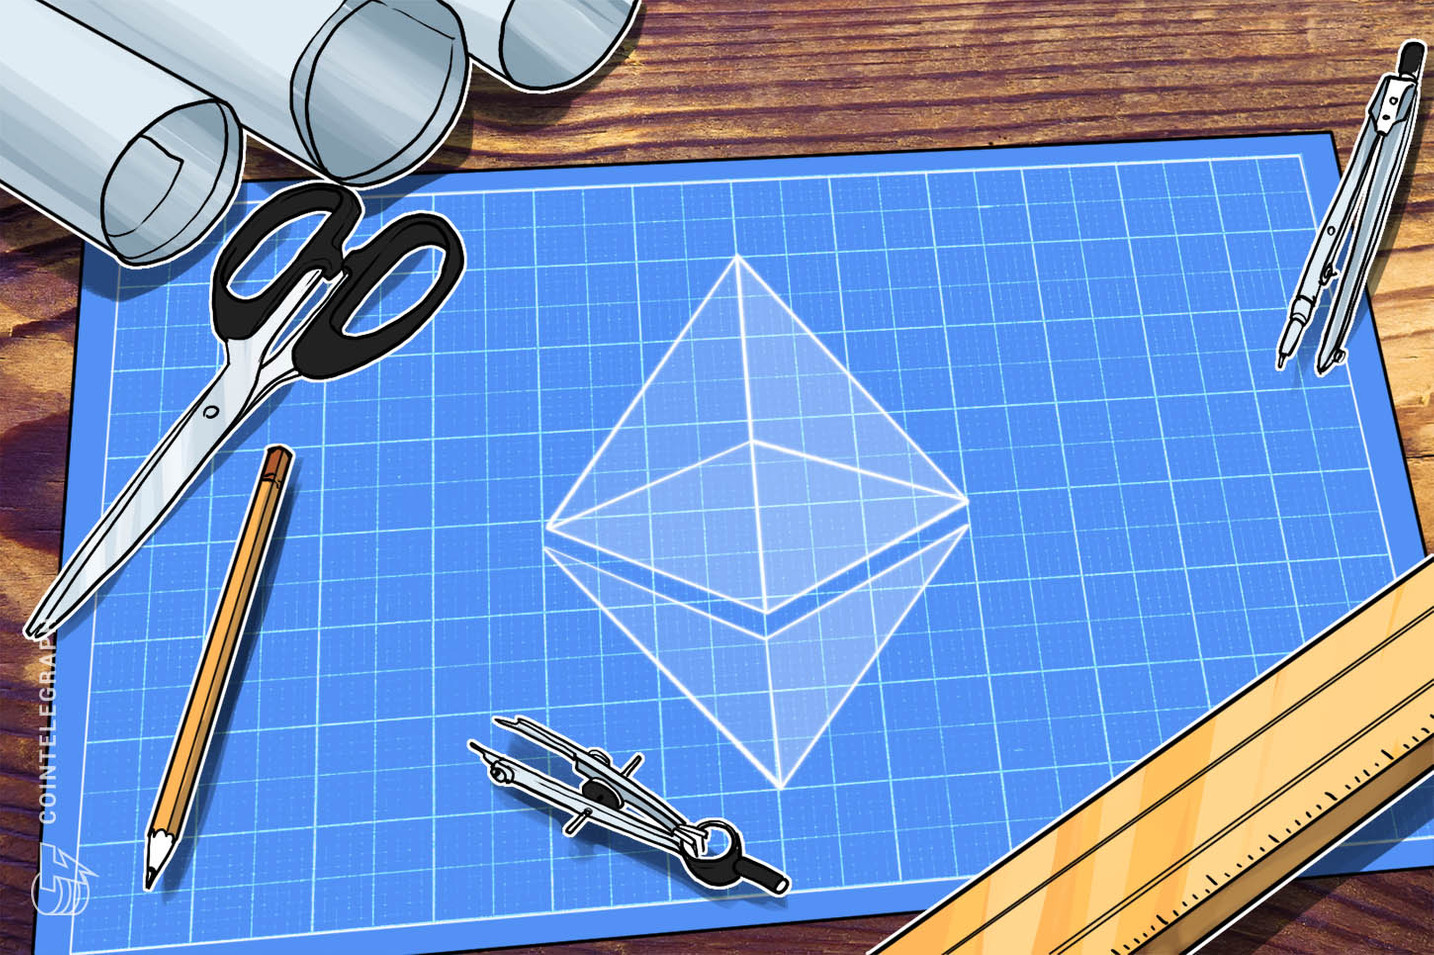 Enterprise Ethereum Alliance Releases Client Specifications To Facilitate Interoperability